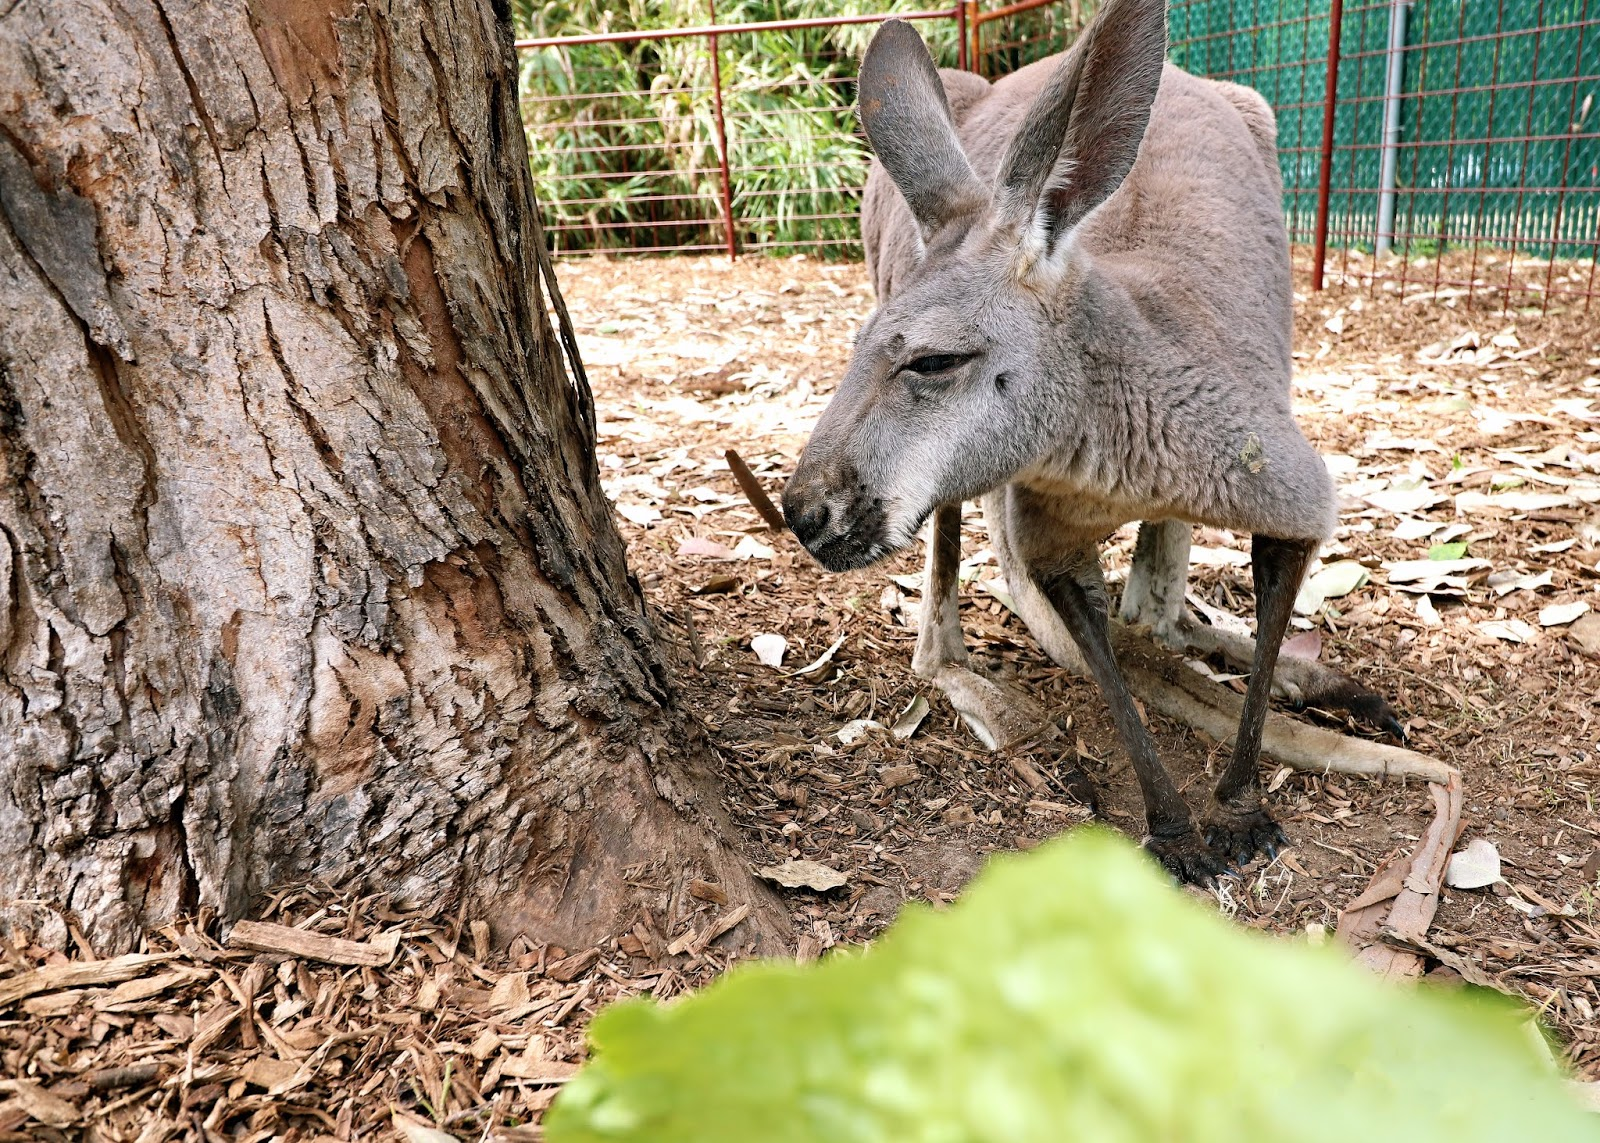 Feeding Kangaroos at the San Antonio Zoo